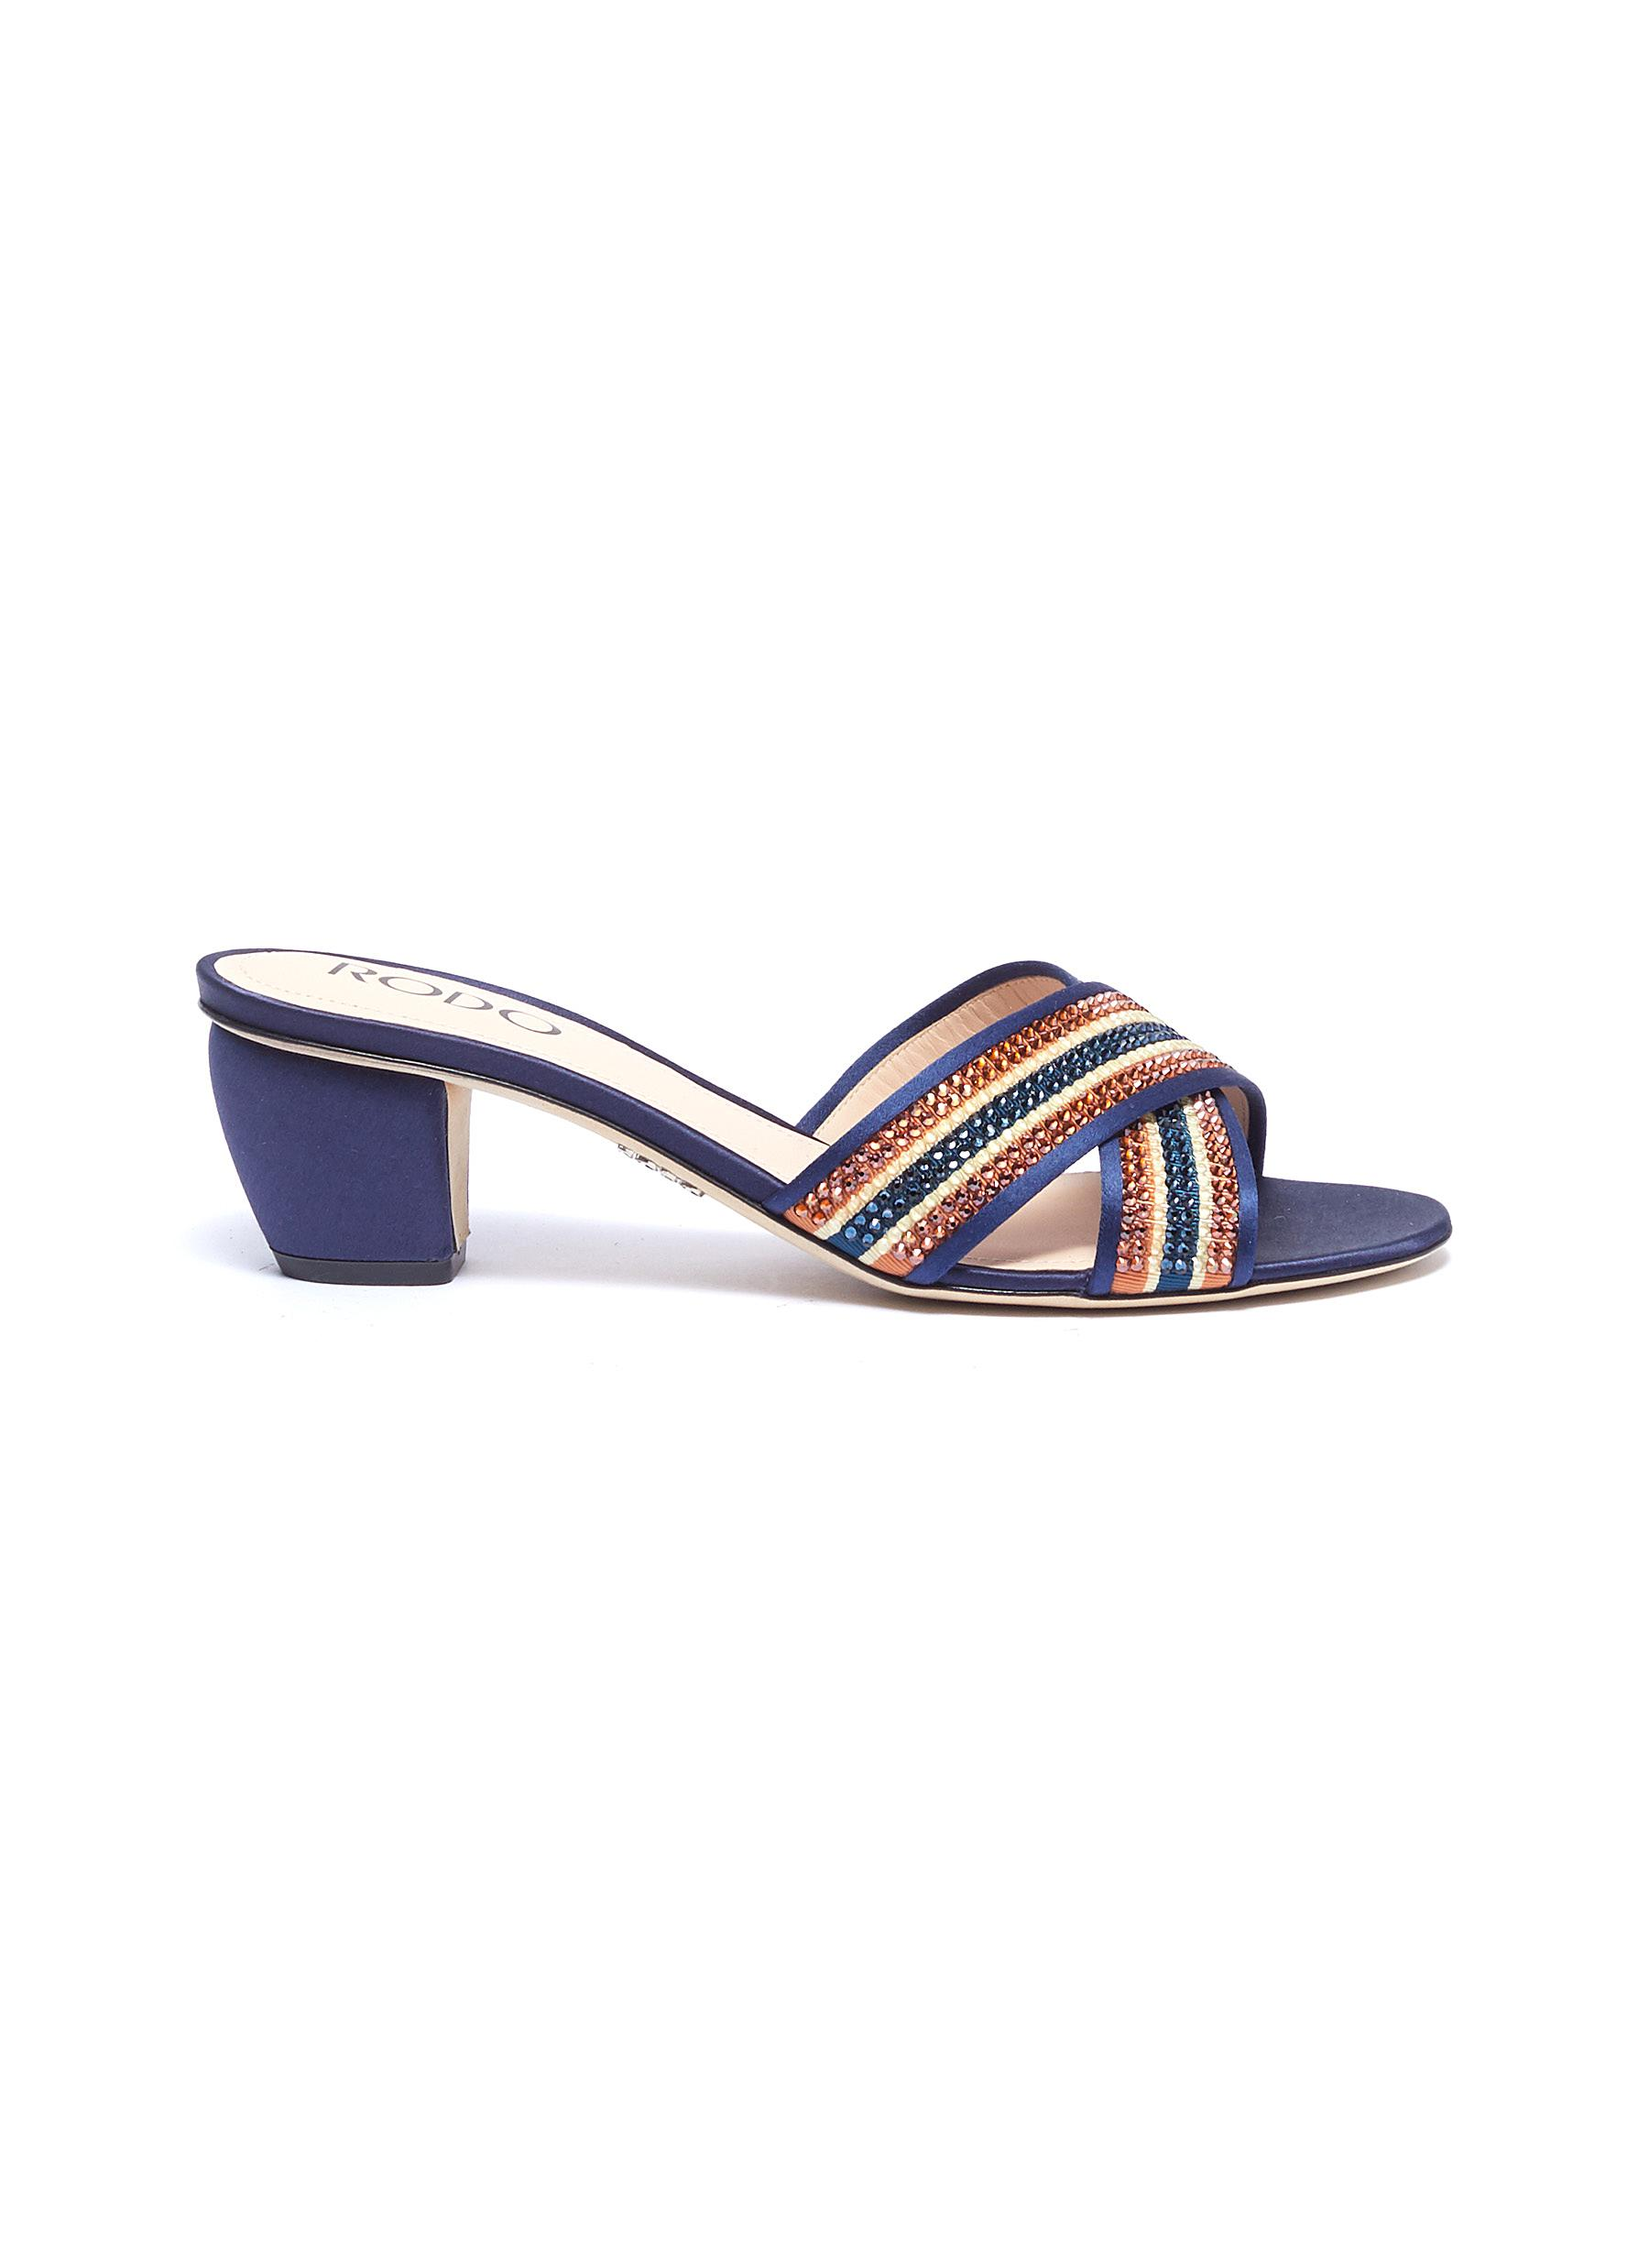 Strass stripe cross strap satin sandals by Rodo